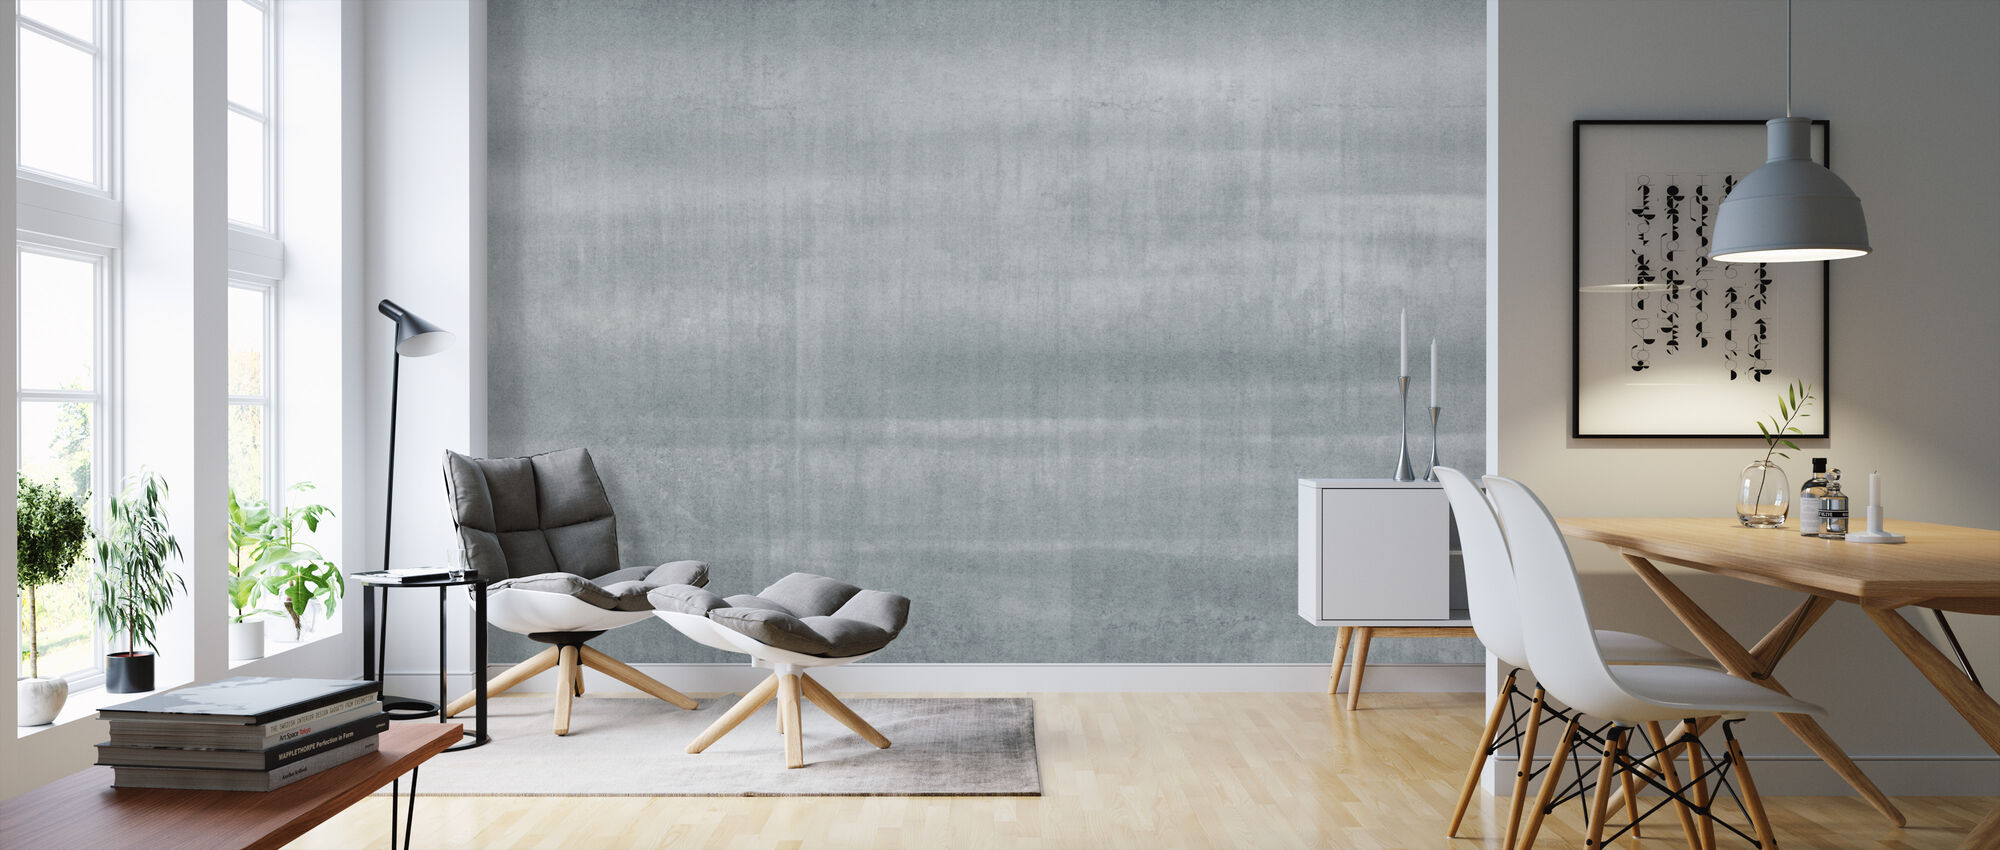 Smooth Concrete Wall - Wallpaper - Living Room